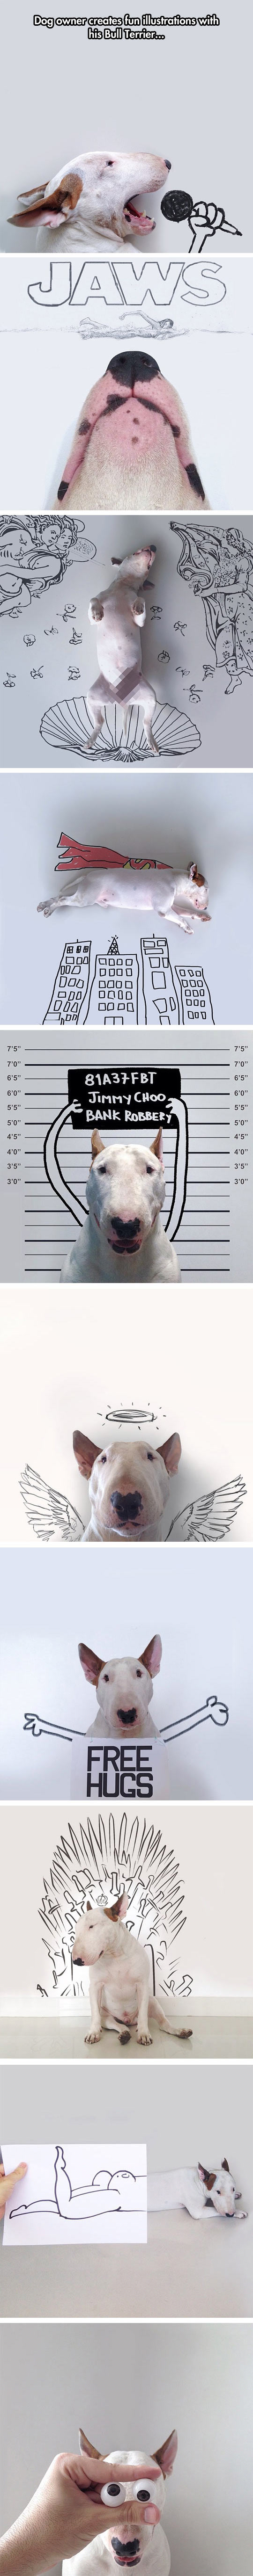 The Fascinating Life Of A Bull Terrier